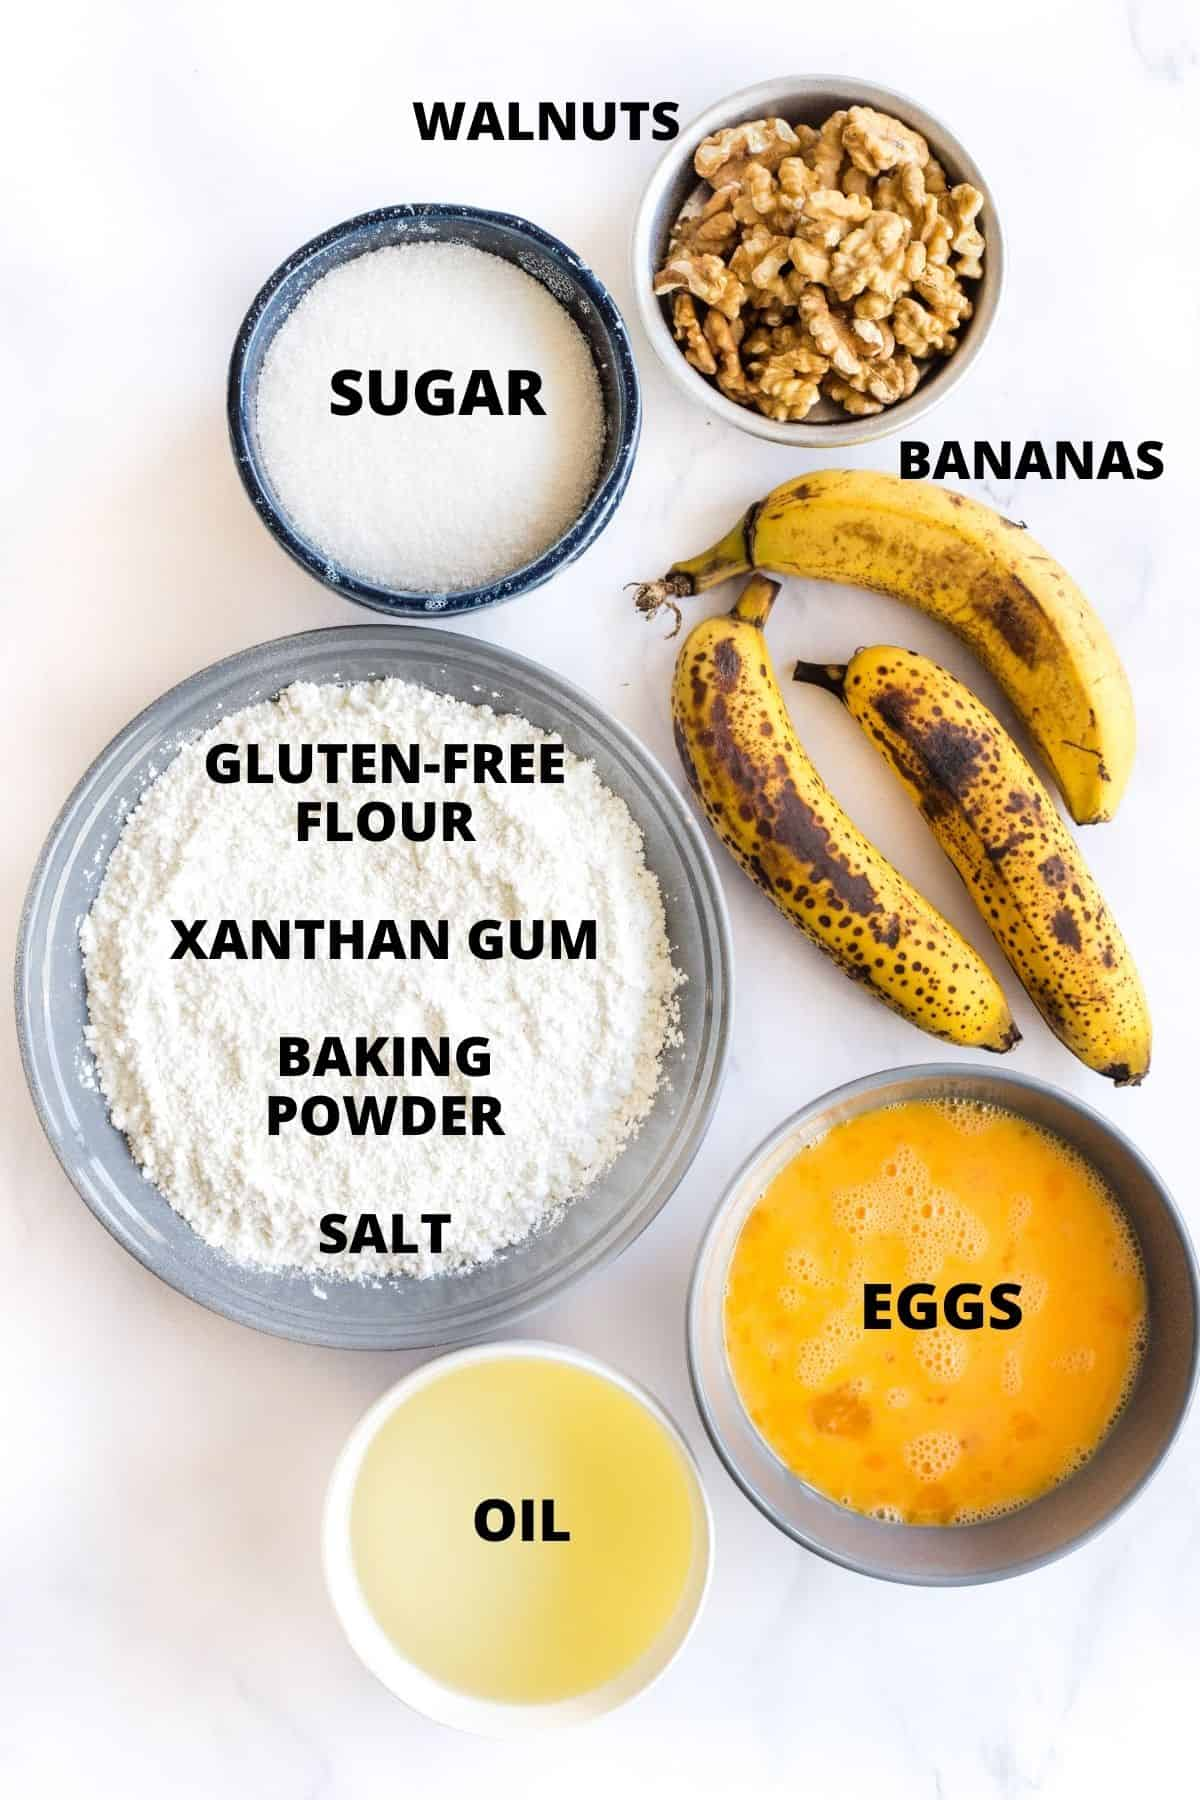 Ingredients required to make easy banana nut muffins.